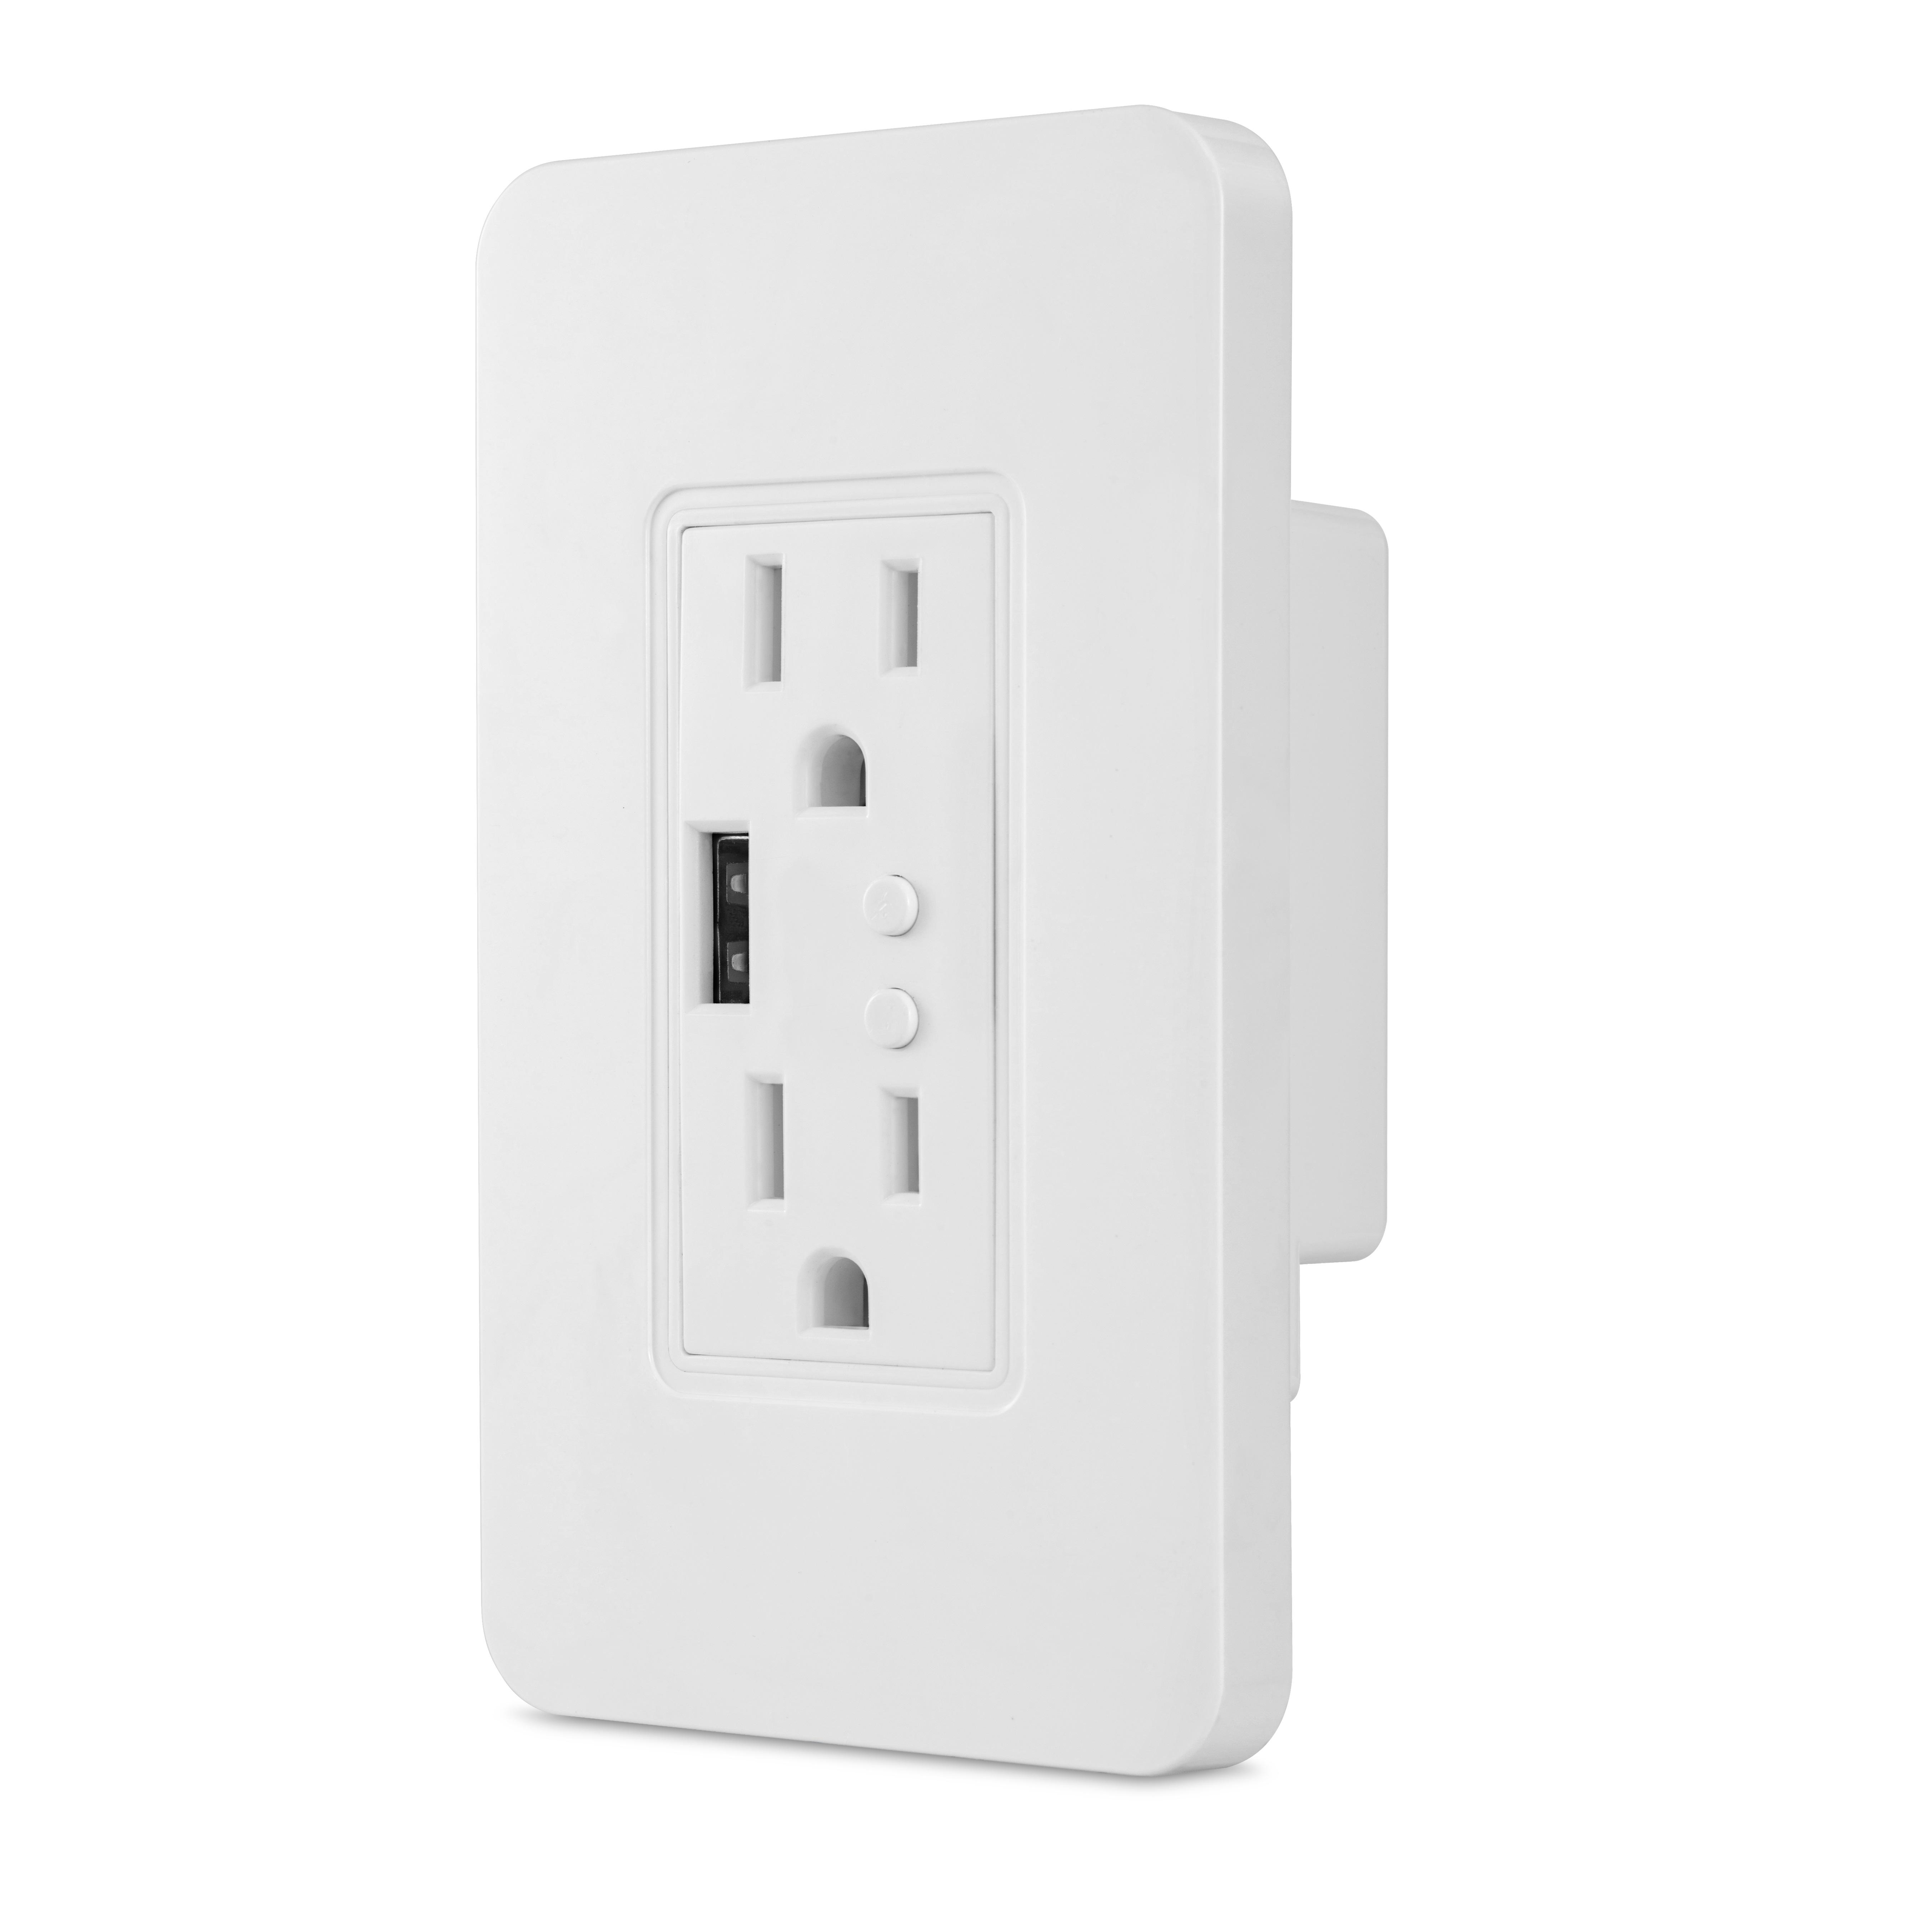 USB Smart Wall Socket 2 Plug Outlet US Type Work with Alexa Google Home, No Hub Required By Smart Life/Tuya APP Remote Control